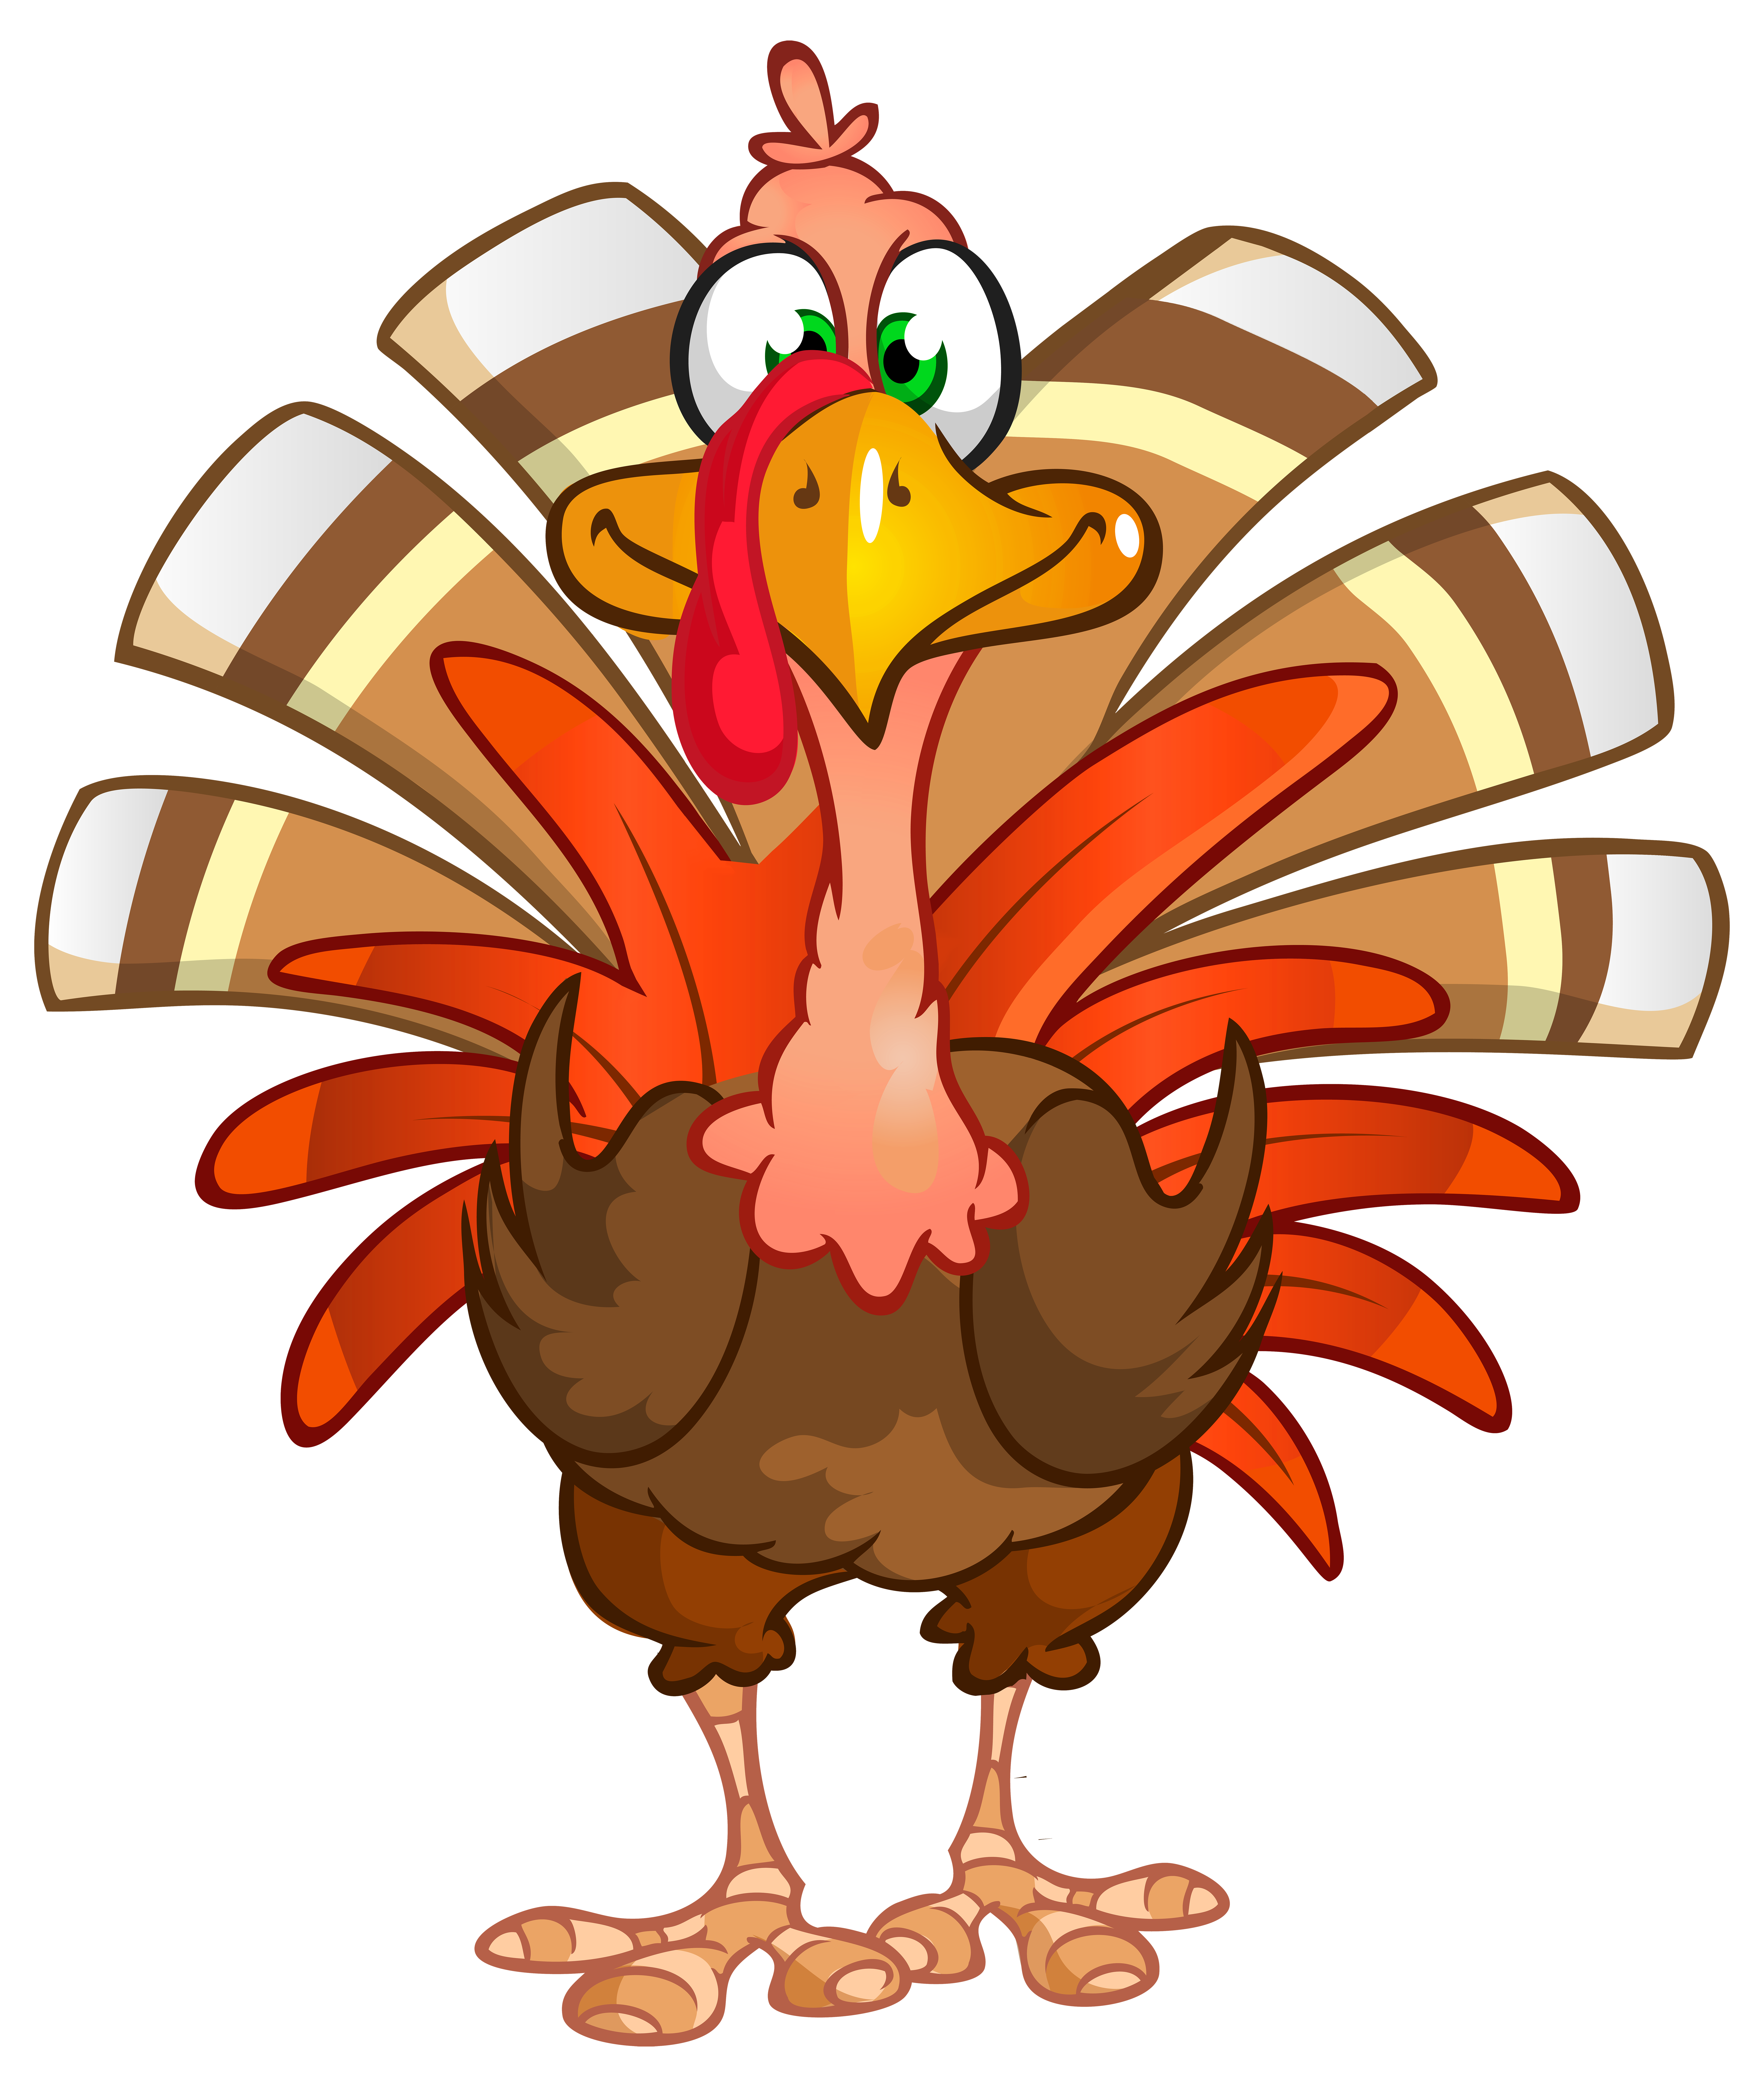 Thanksgiving png image gallery. Turkey clip art transparent background freeuse stock